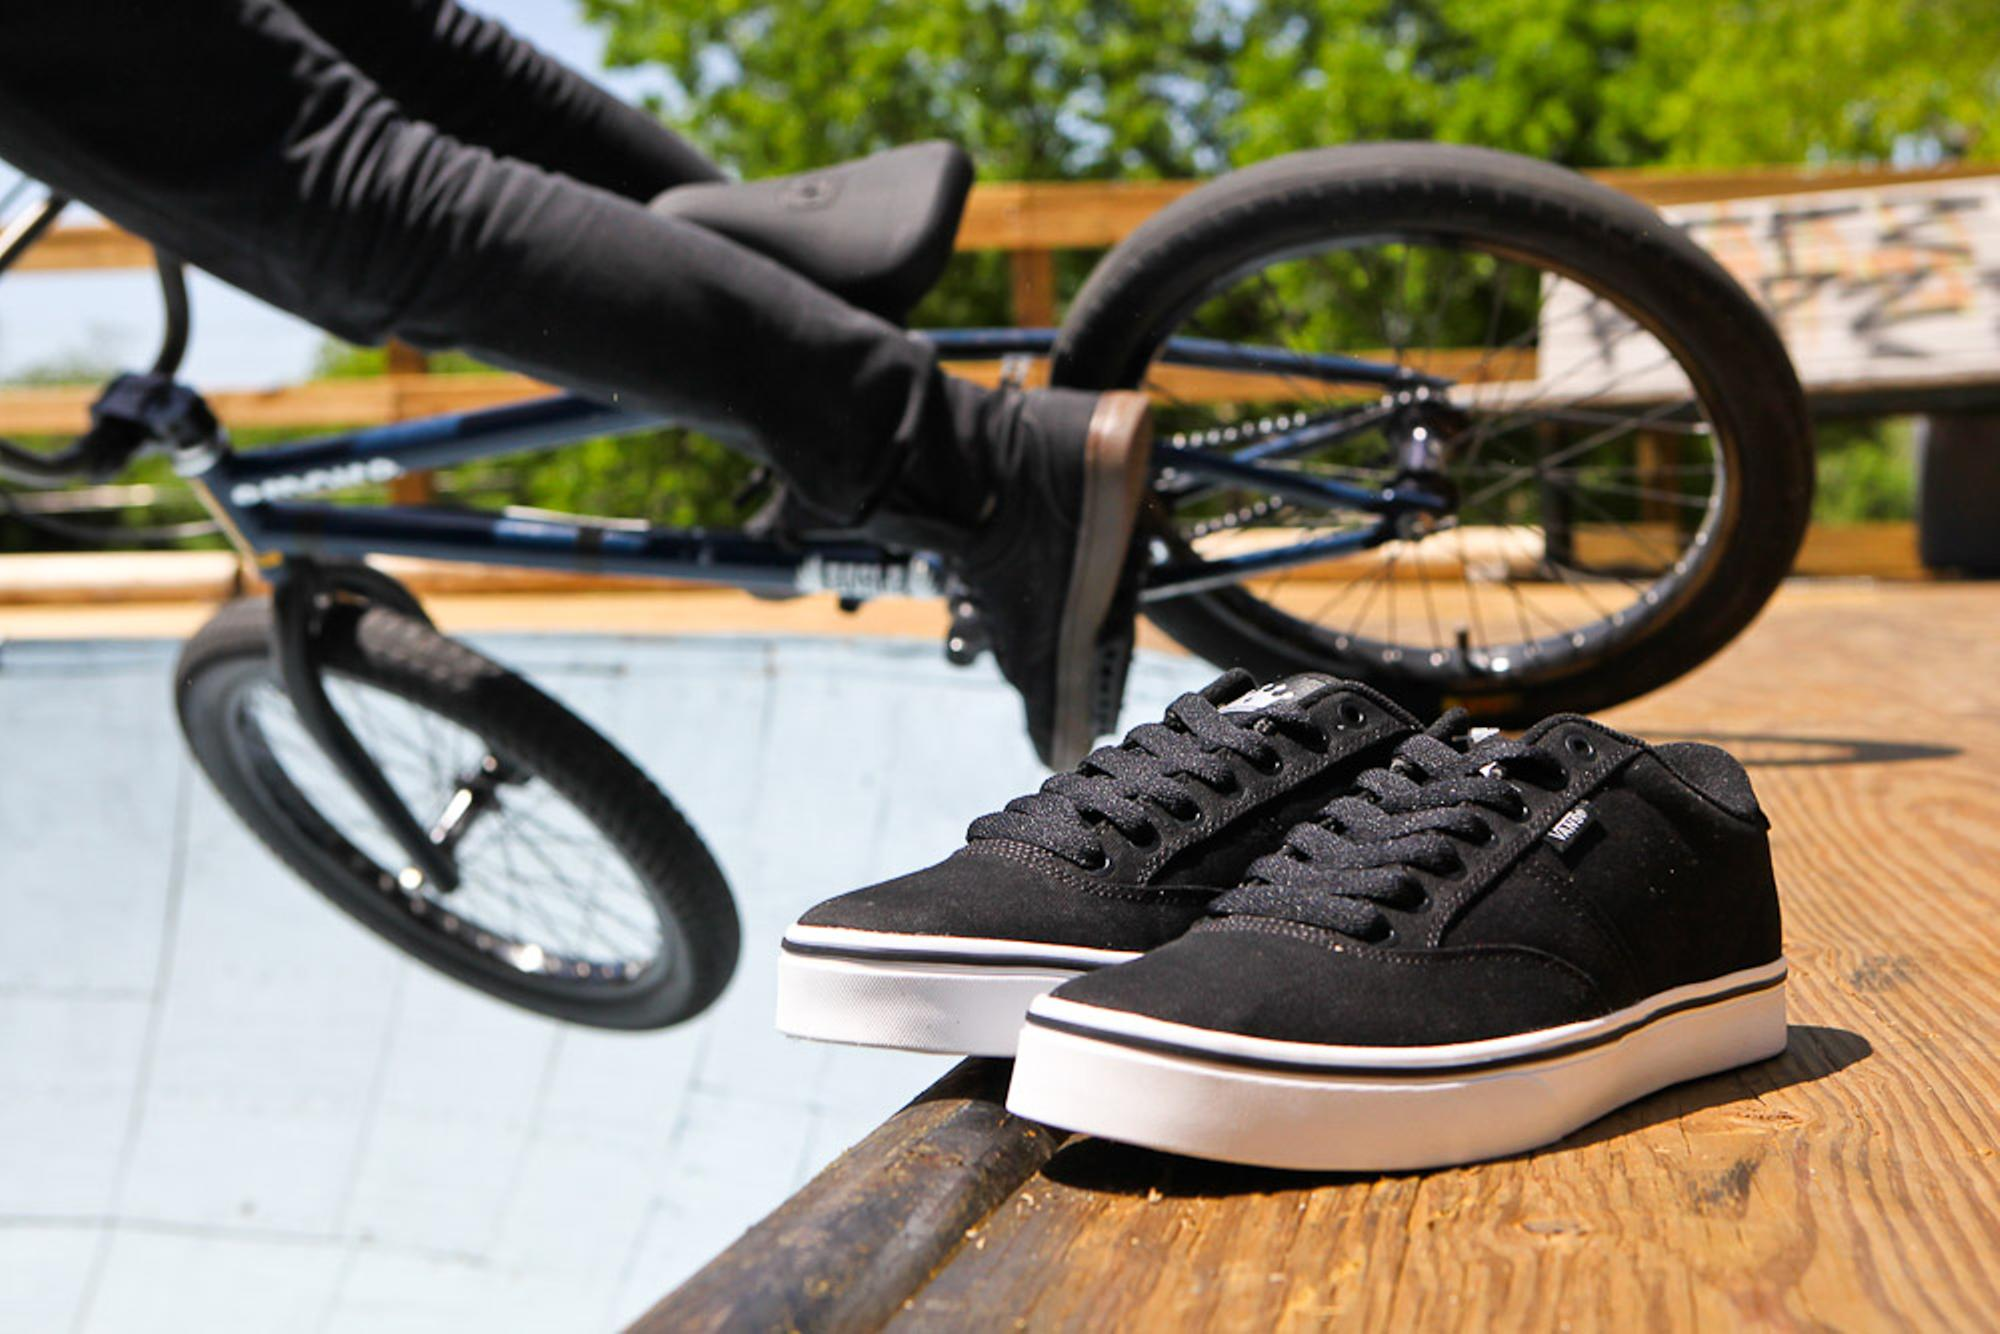 Vans / Empire BMX Ruark shoes